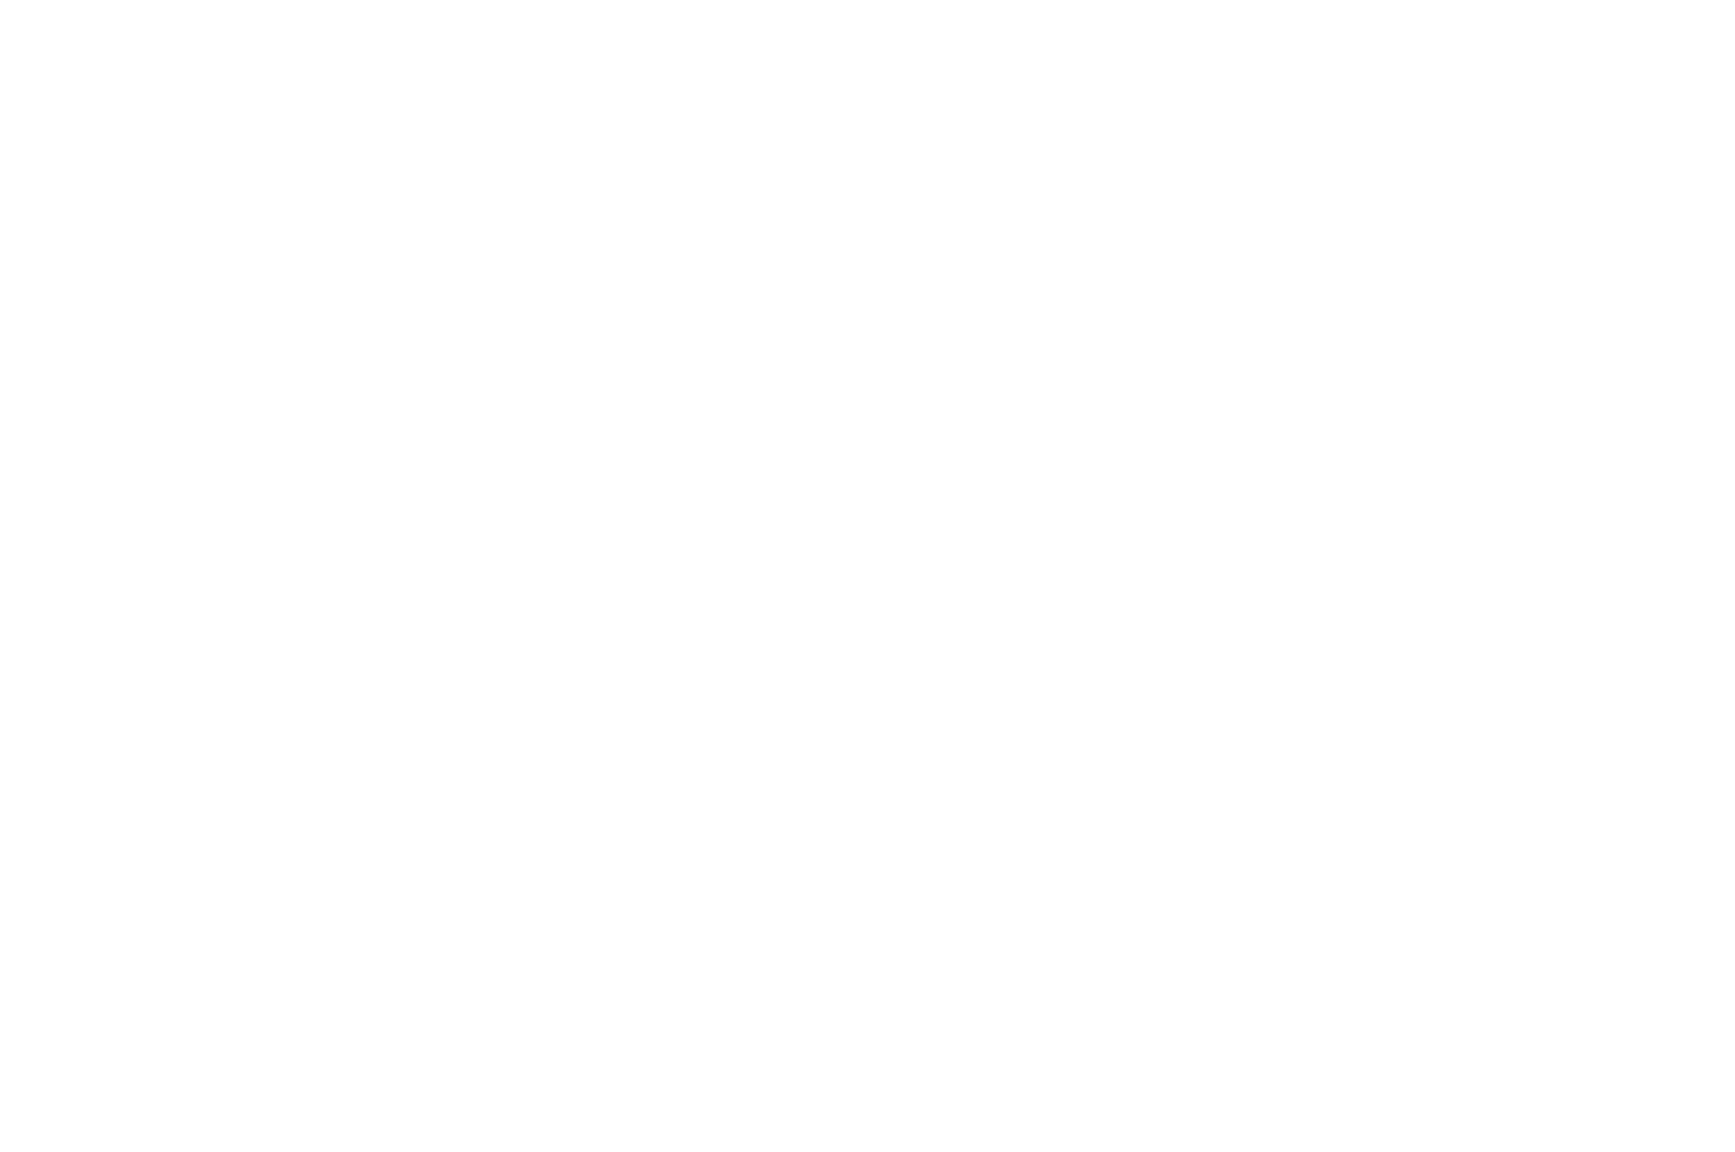 OFFICIAL SELECTION - Prairie Lights Film Festival - 2017.png